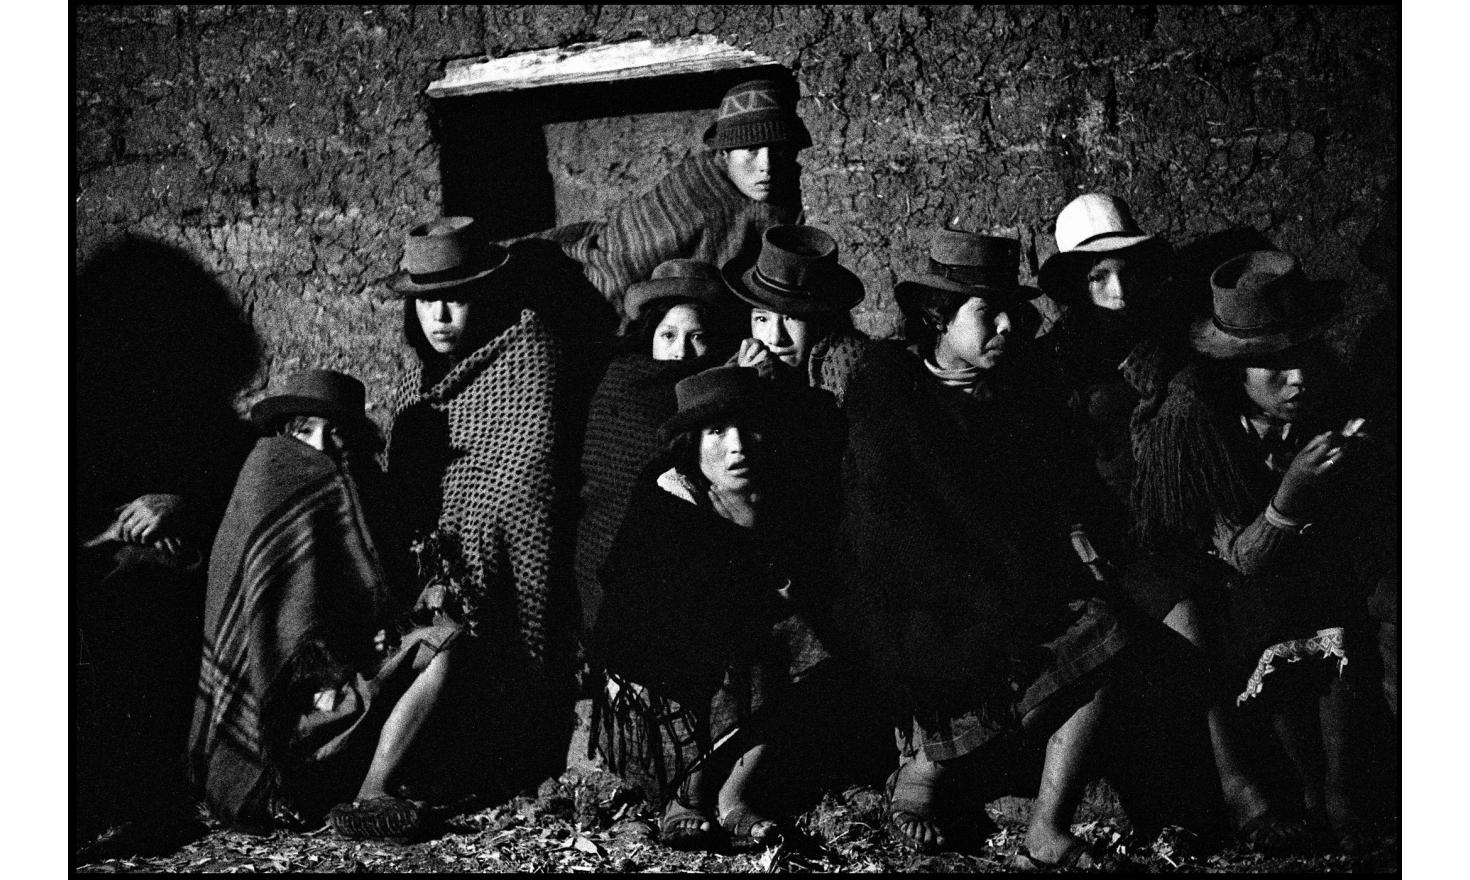 night meeting of campesinos,  in the town house of a village in the Ancahuasi region in the Peruvian Andes. Peru. October 25, 1982